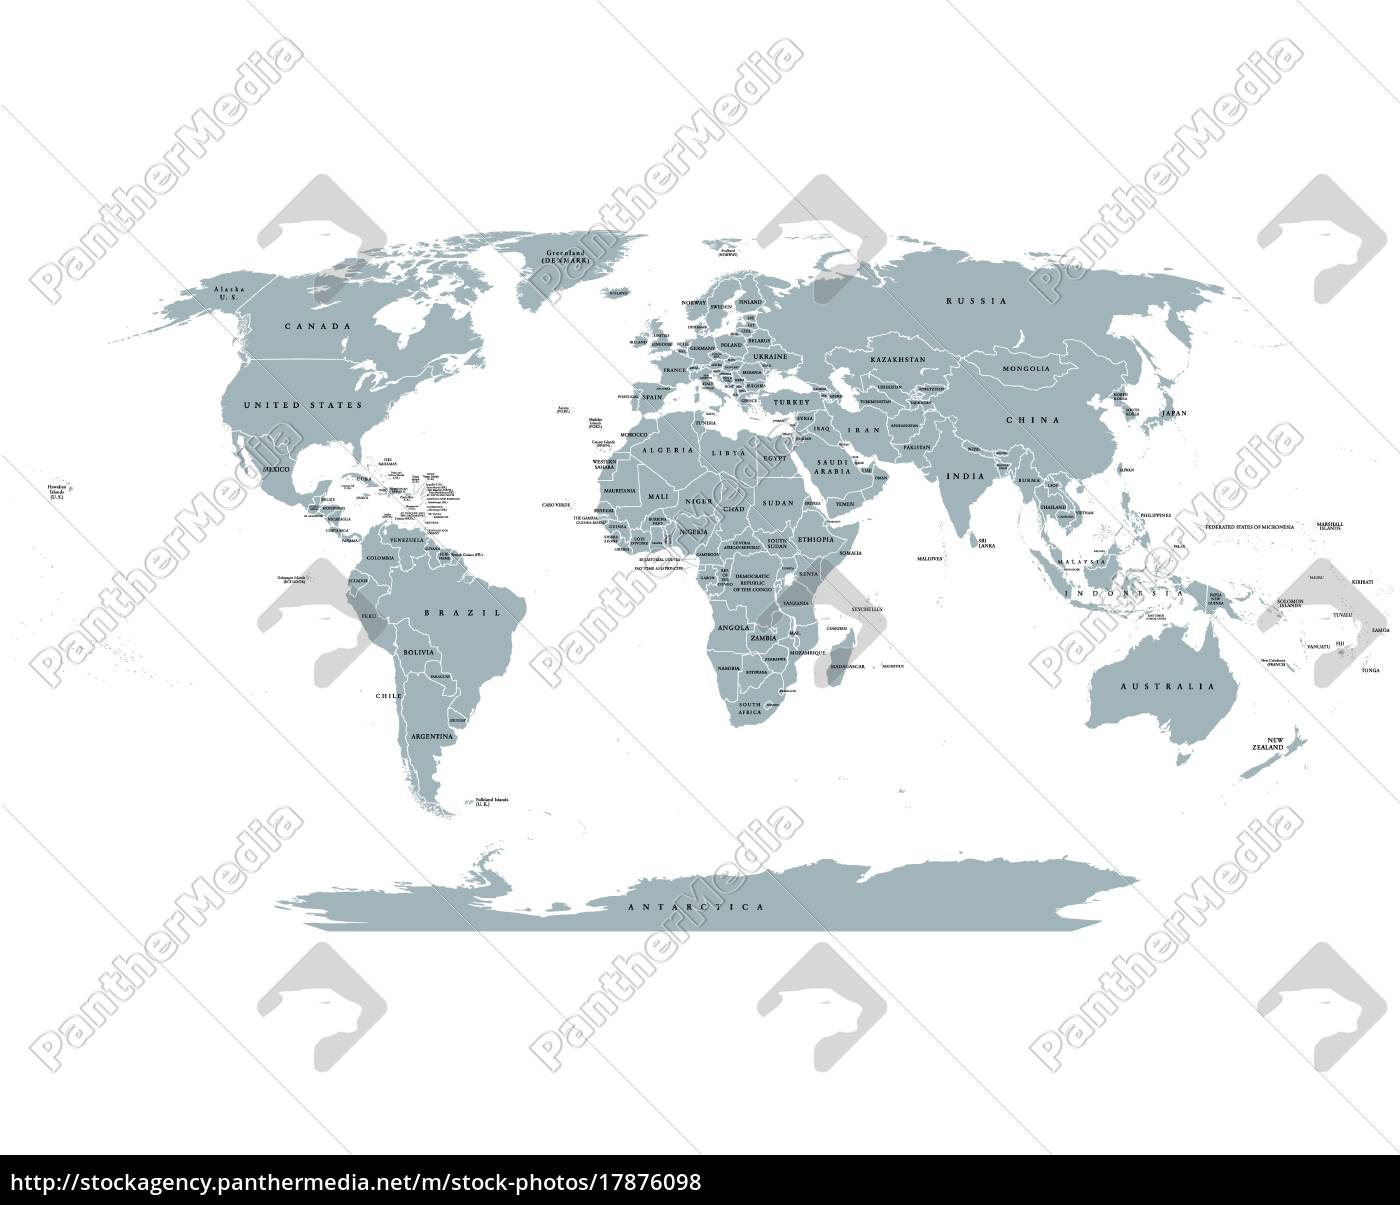 royalty free vector 17876098 - World Political Map